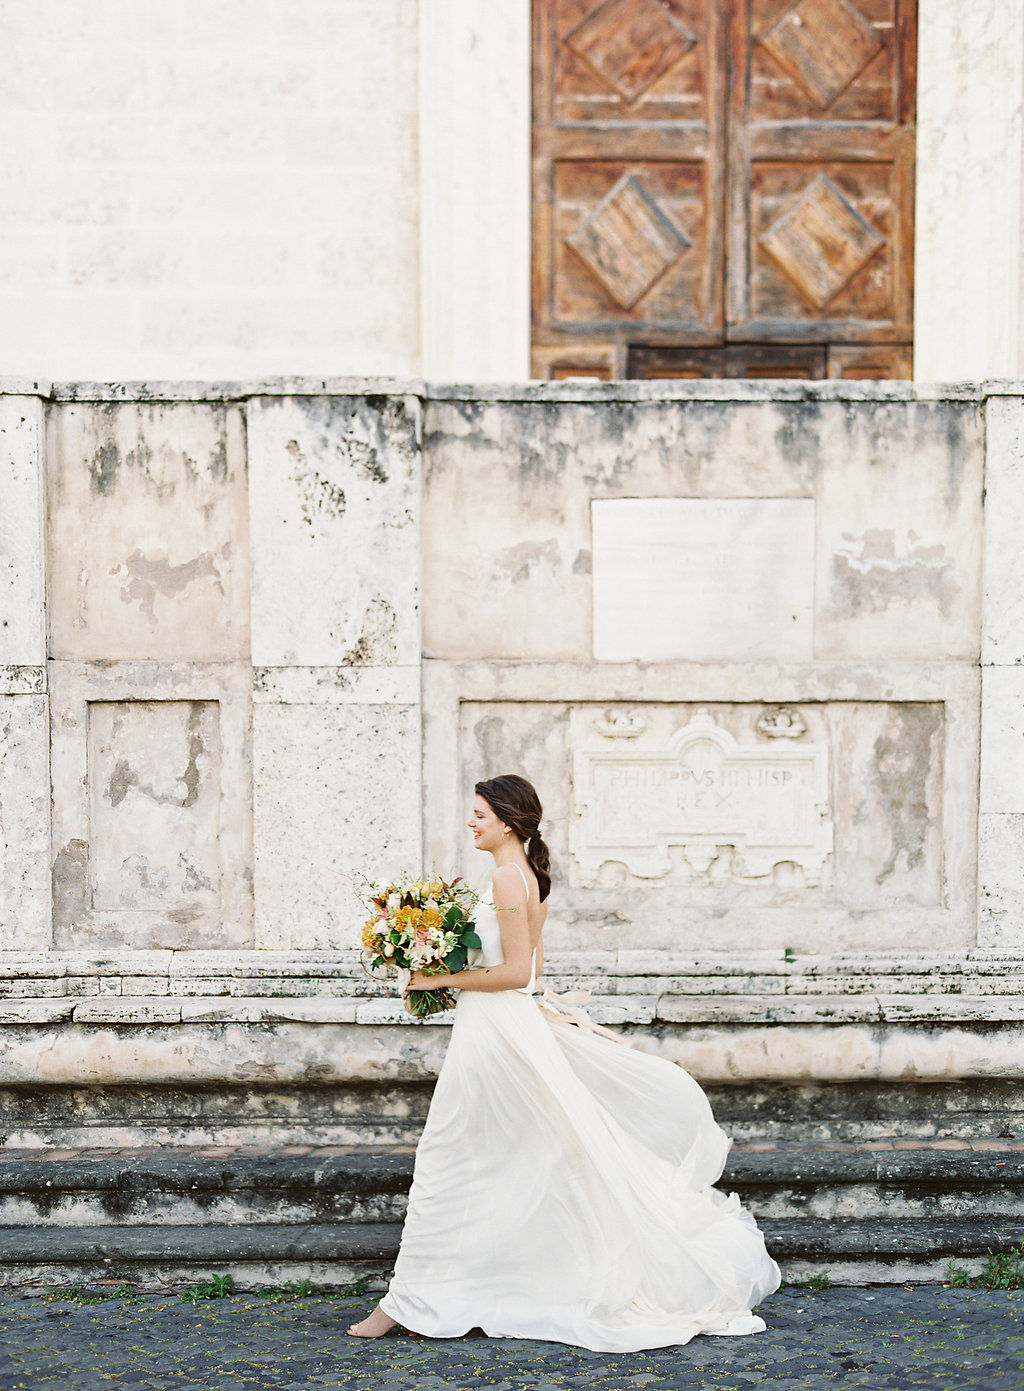 Vicki_Grafton_Photography_Rome_Italy_Wedding_Photographer_2017-22.jpg